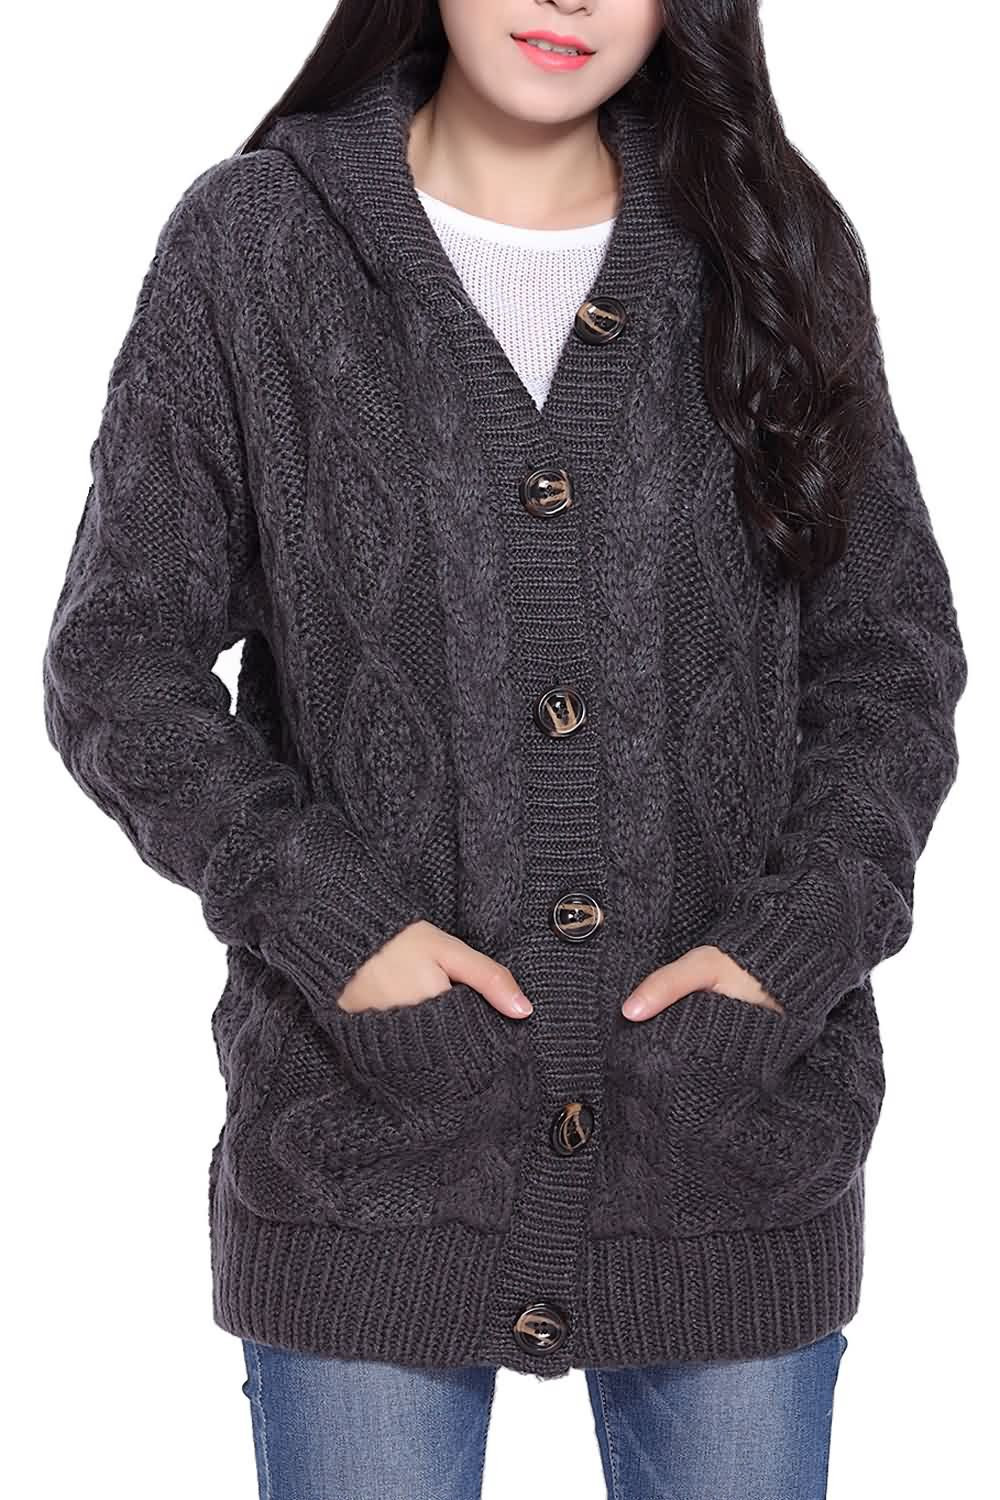 Fresh button Up Cable Knit Hooded Cardigan In Deep Gray Cable Knit Cardigan Sweater Of Wonderful 46 Models Cable Knit Cardigan Sweater